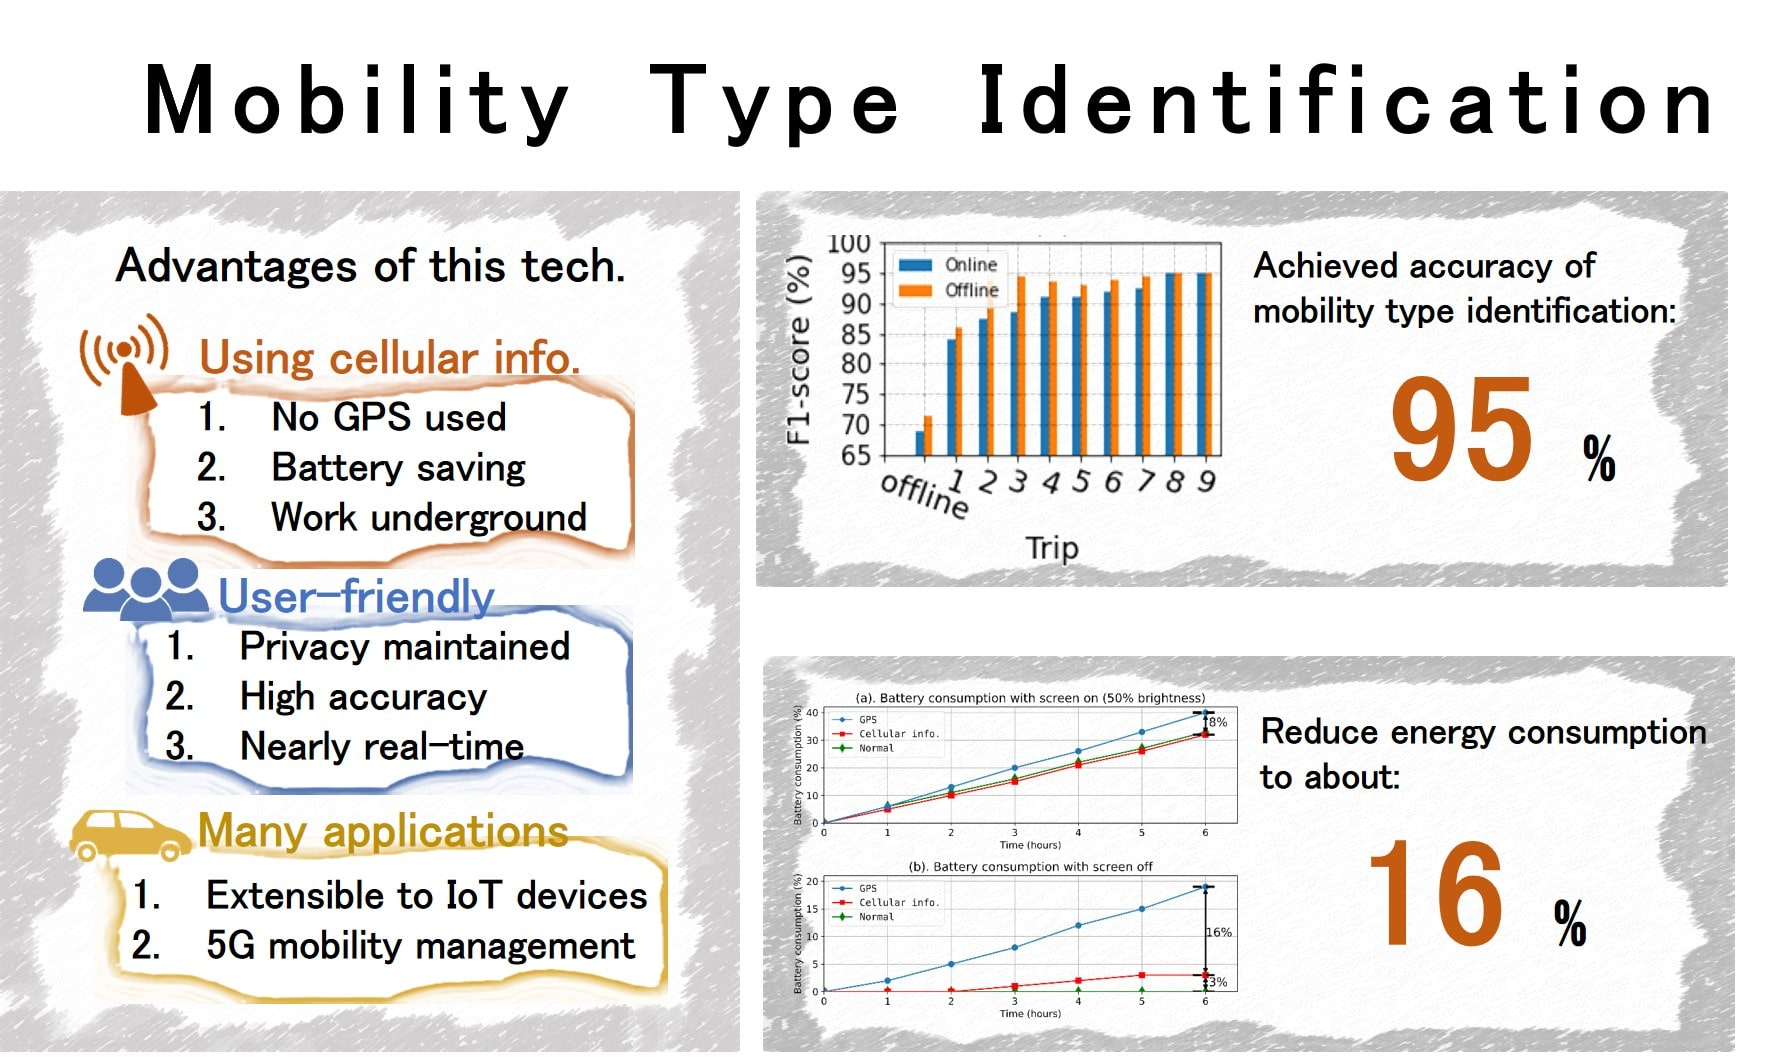 Applying Machine Learning to User Mobility Type Identification for 5th Generation Mobile Networks